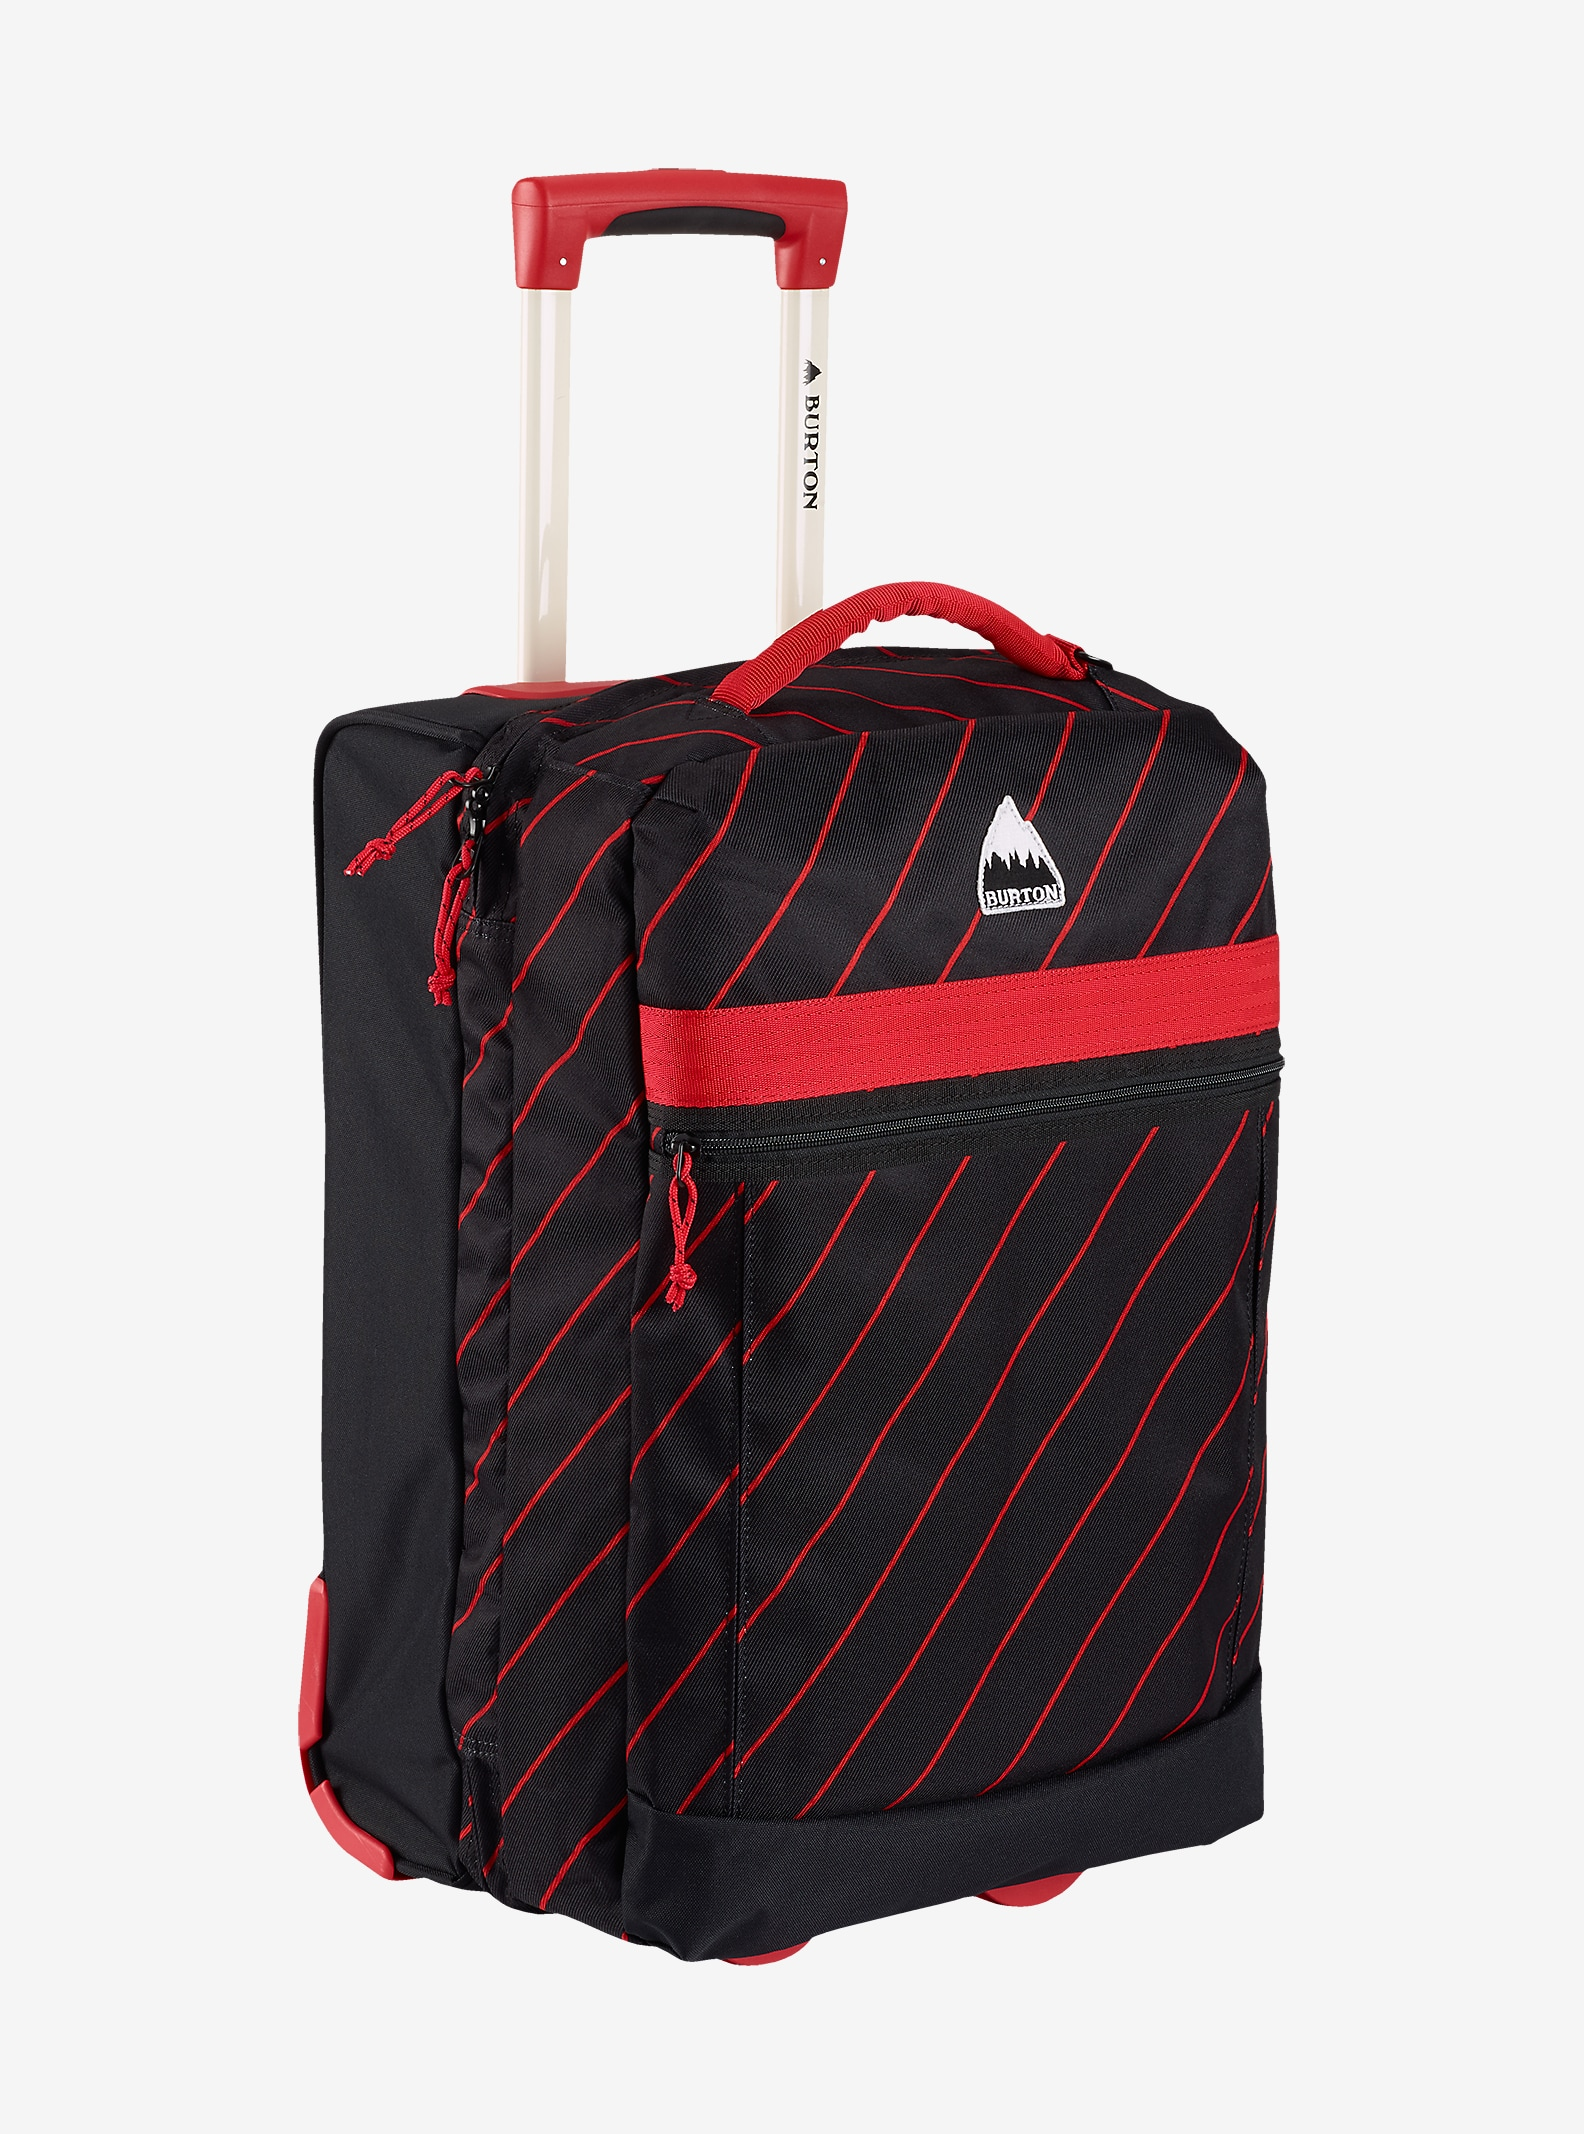 Burton Overnighter Roller Travel Bag shown in Performer